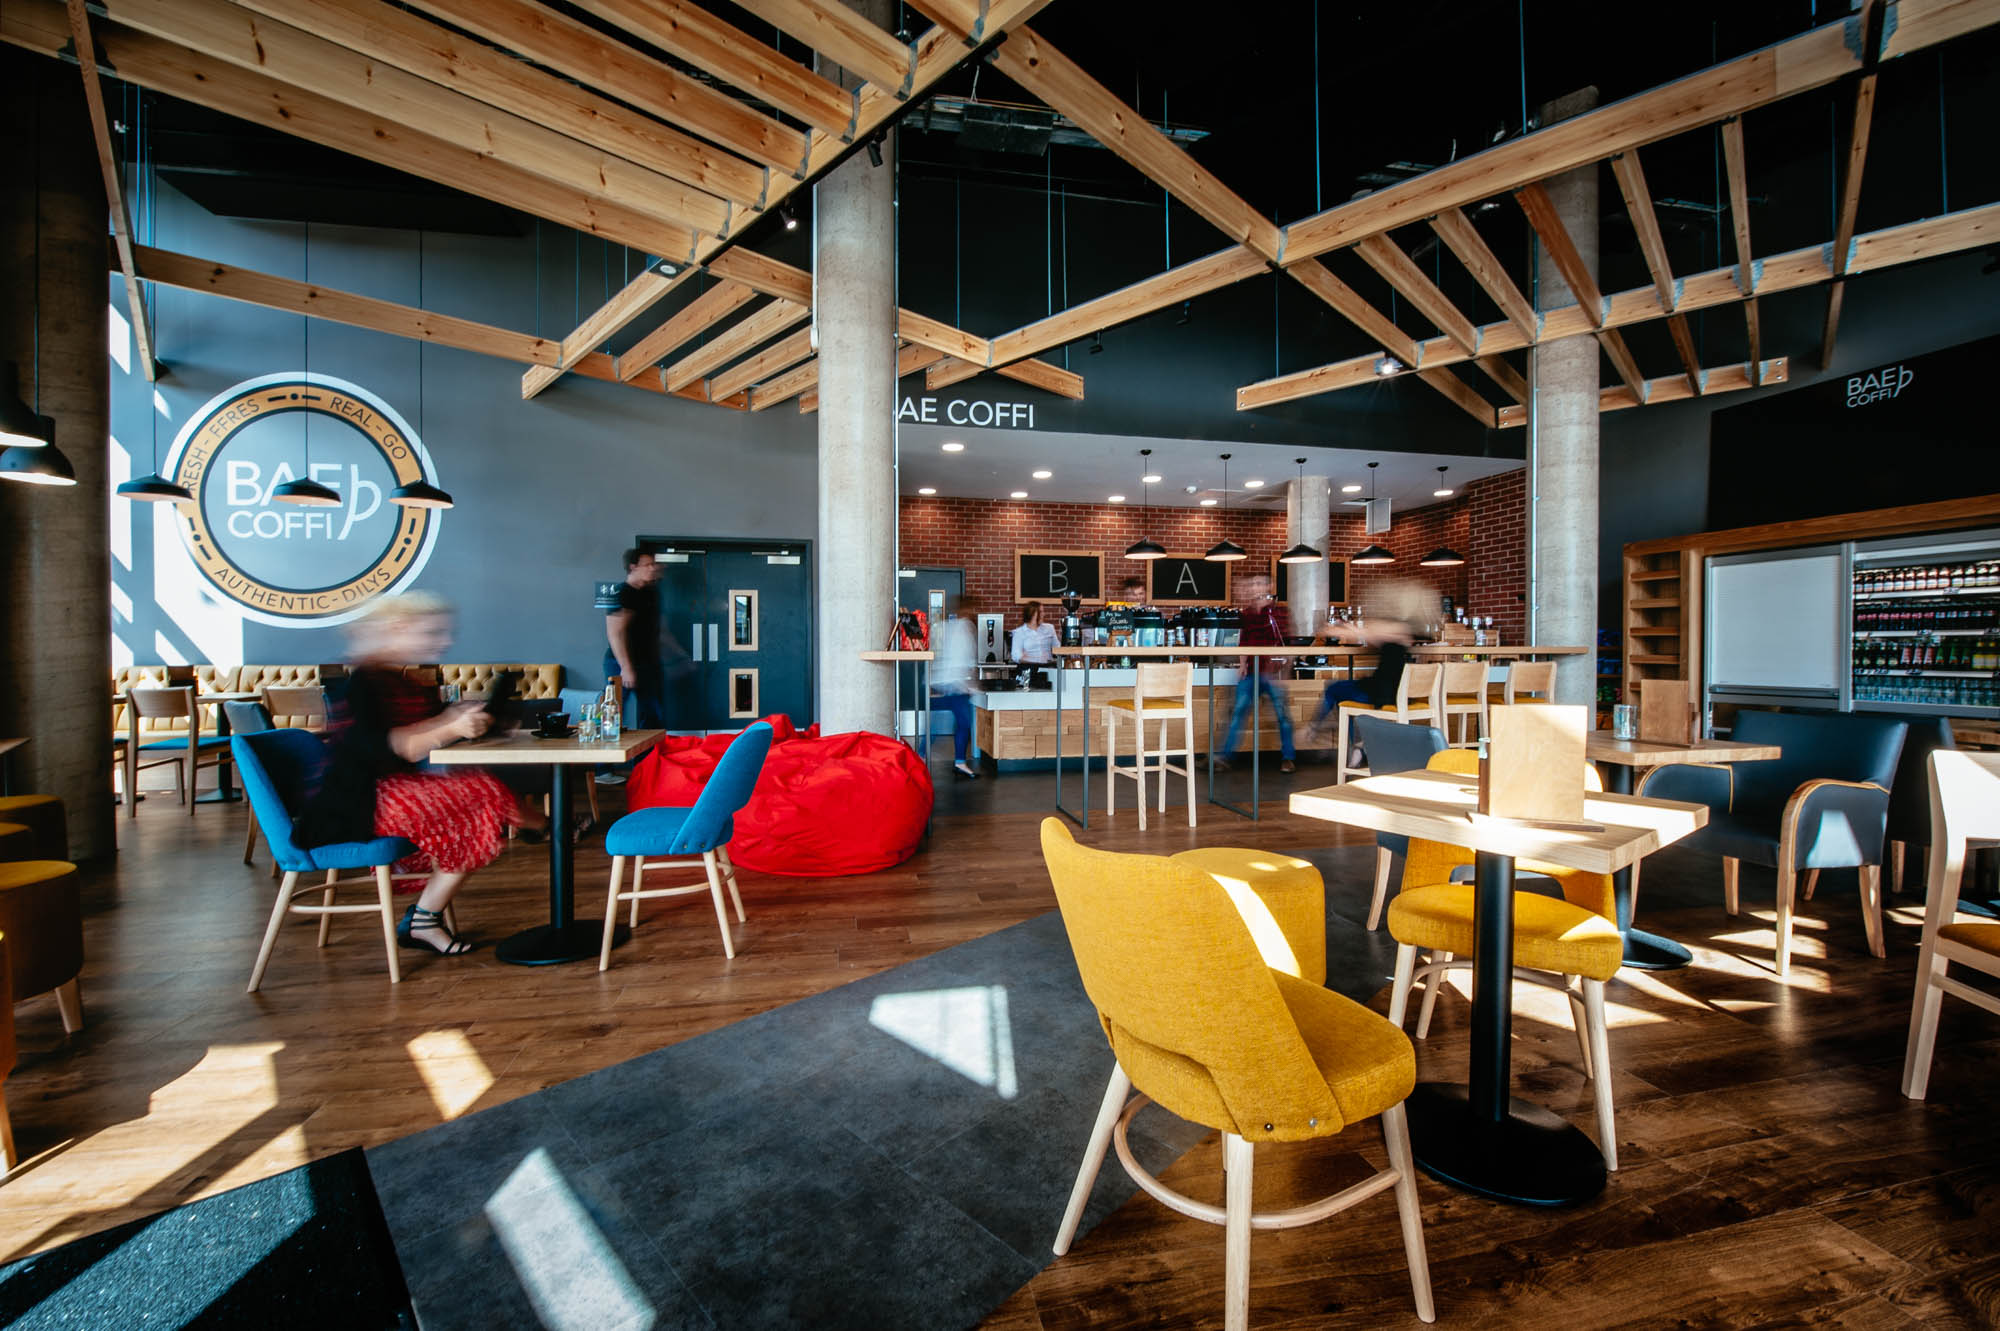 A photo of the interior of a coffee shop